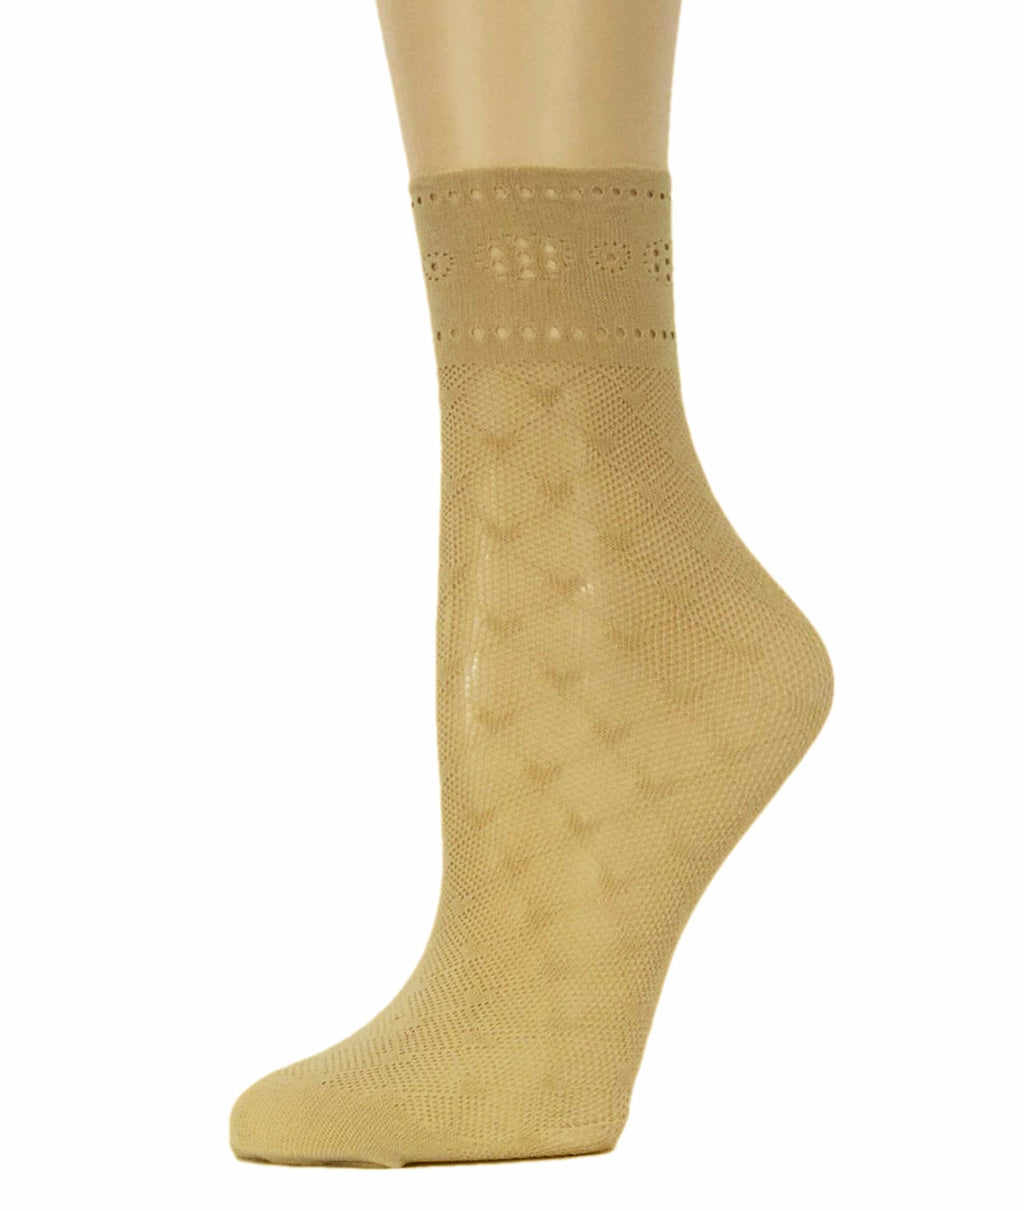 Little Hearts Mesh Socks - Global Trendz Fashion®